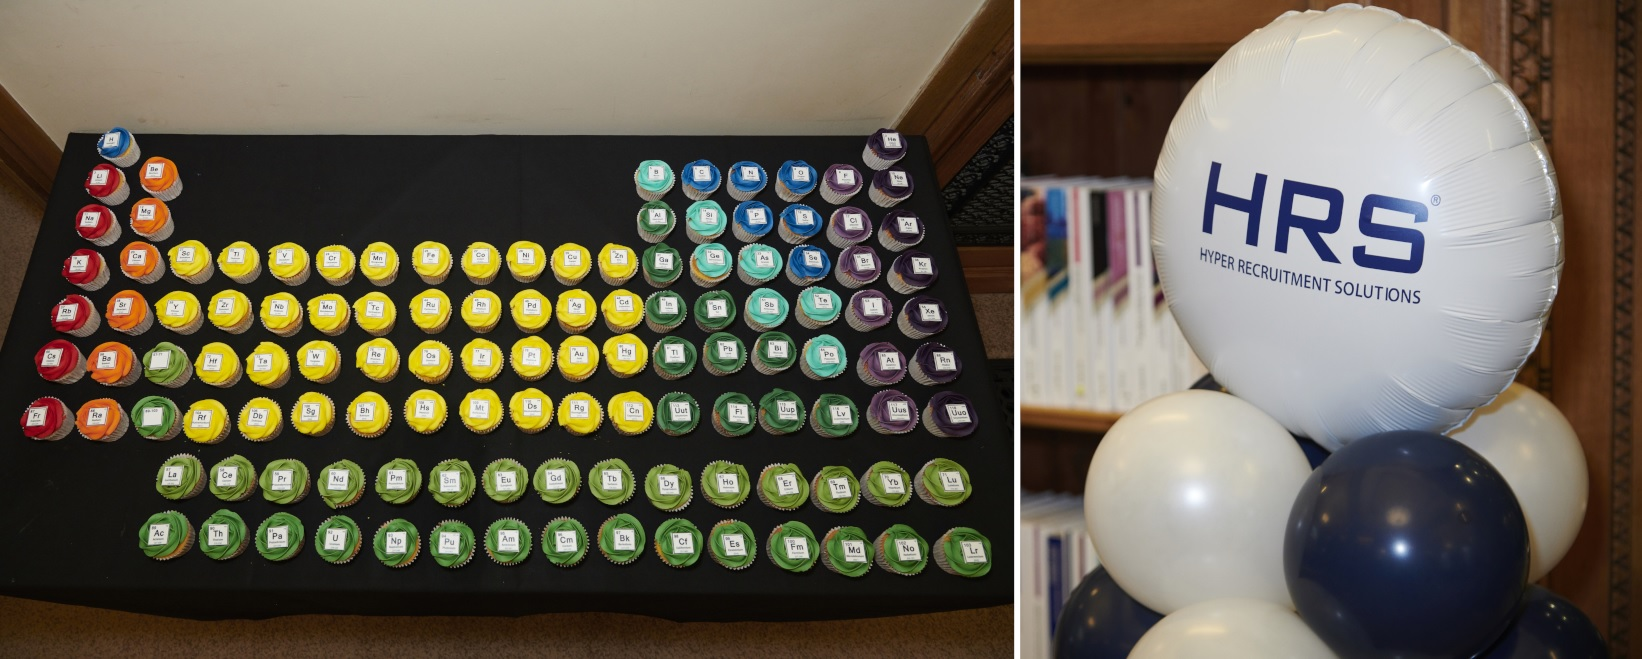 Periodic table cupcakes and HRS balloon